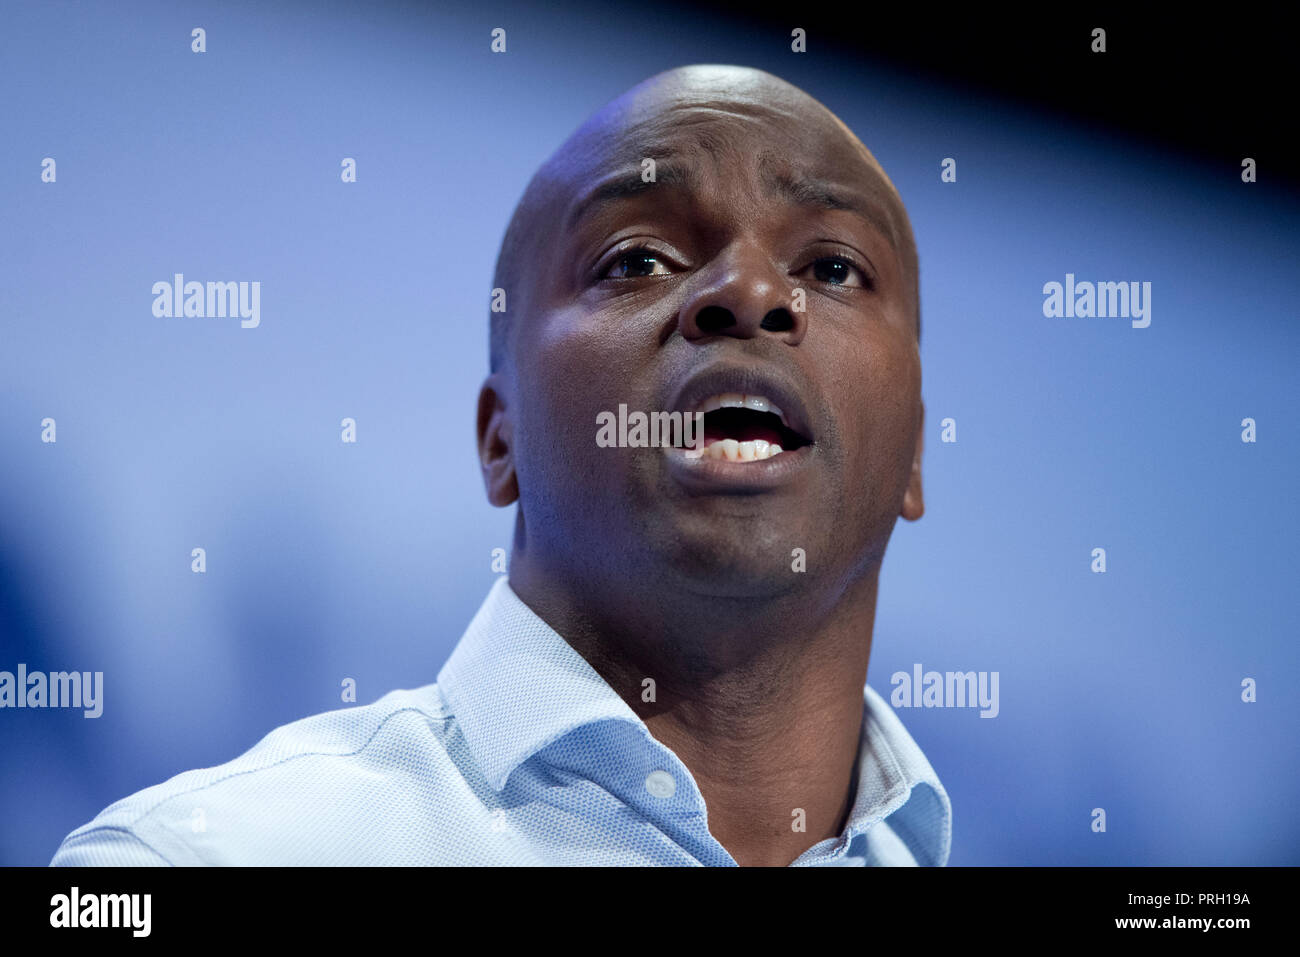 Birmingham, UK. 3rd October 2018. Shaun Bailey, Conservative Candidate for London Mayor, speaks at the Conservative Party Conference in Birmingham. © Russell Hart/Alamy Live News. - Stock Image